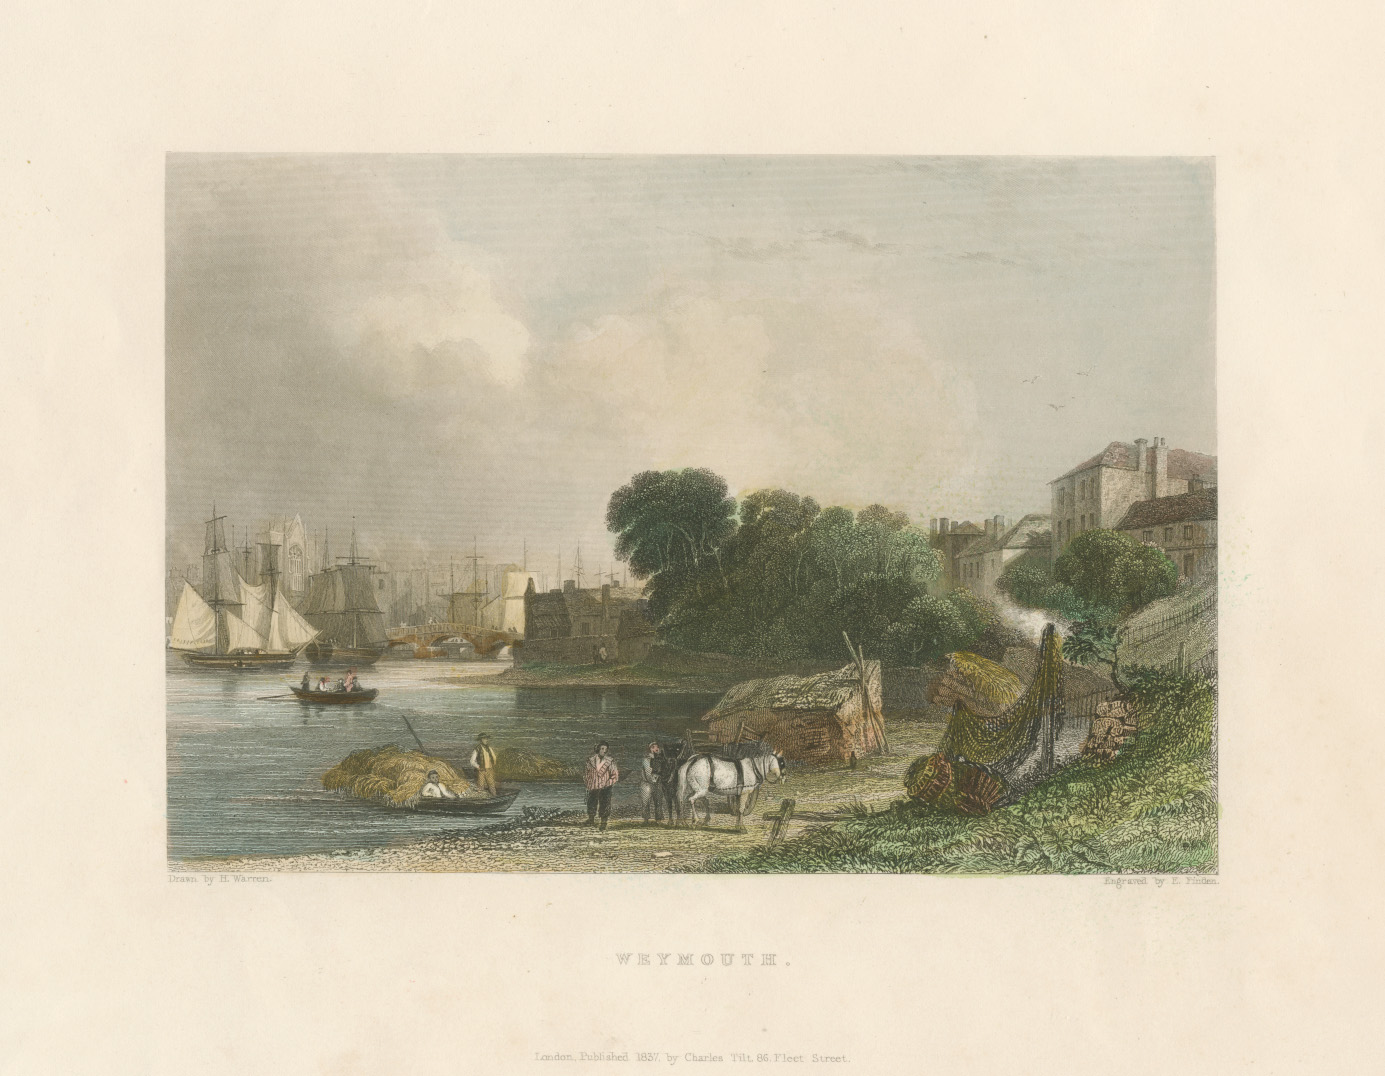 Weymouth, Dorset antique print engraved by Edward Finden c1842.